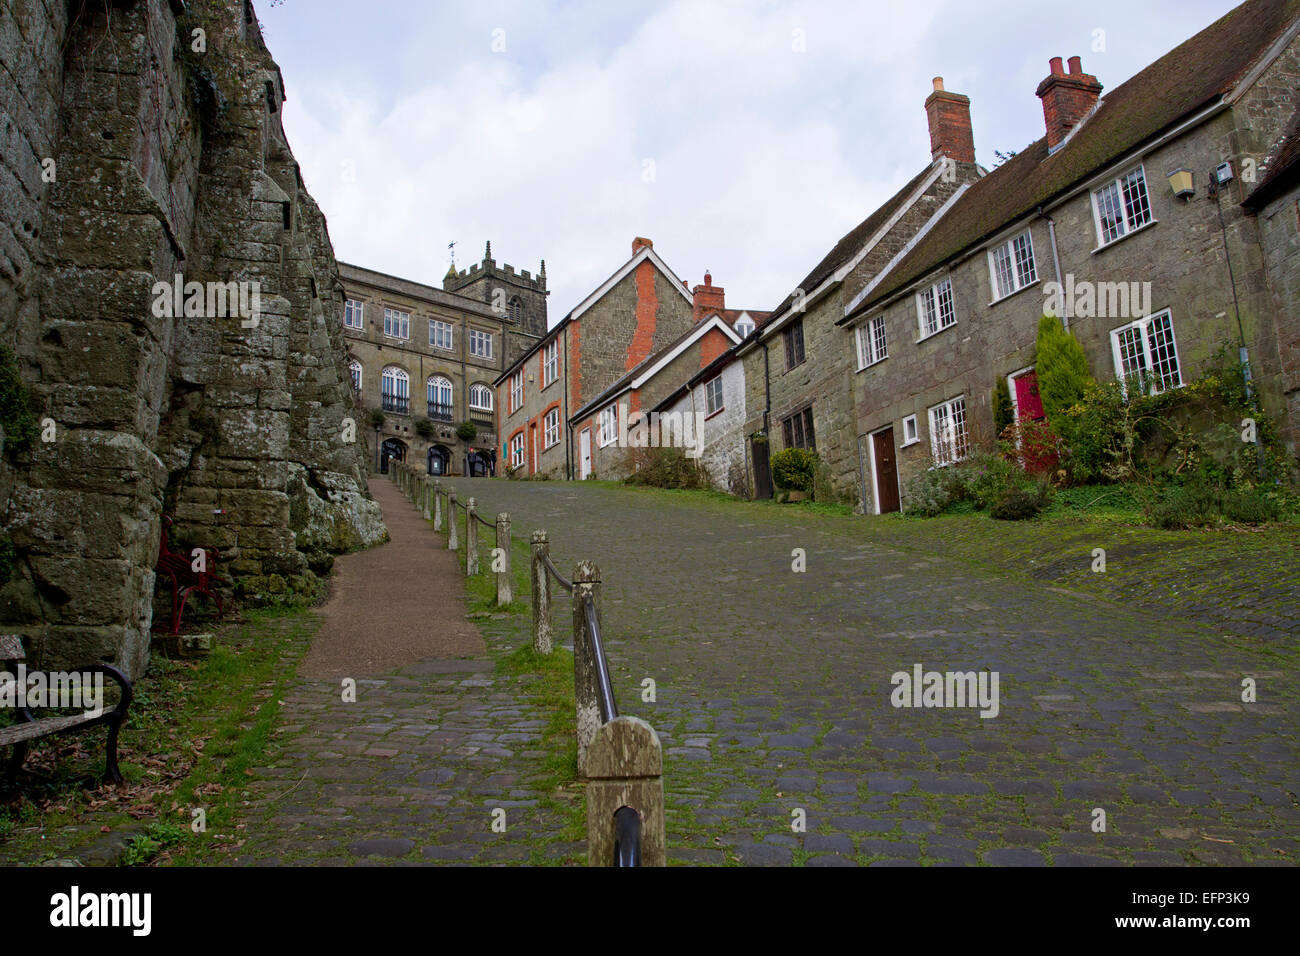 View from the bottom of Gold Hill, famous cobbled street in Shaftesbury, Dorset, England, looking uphill in December - Stock Image